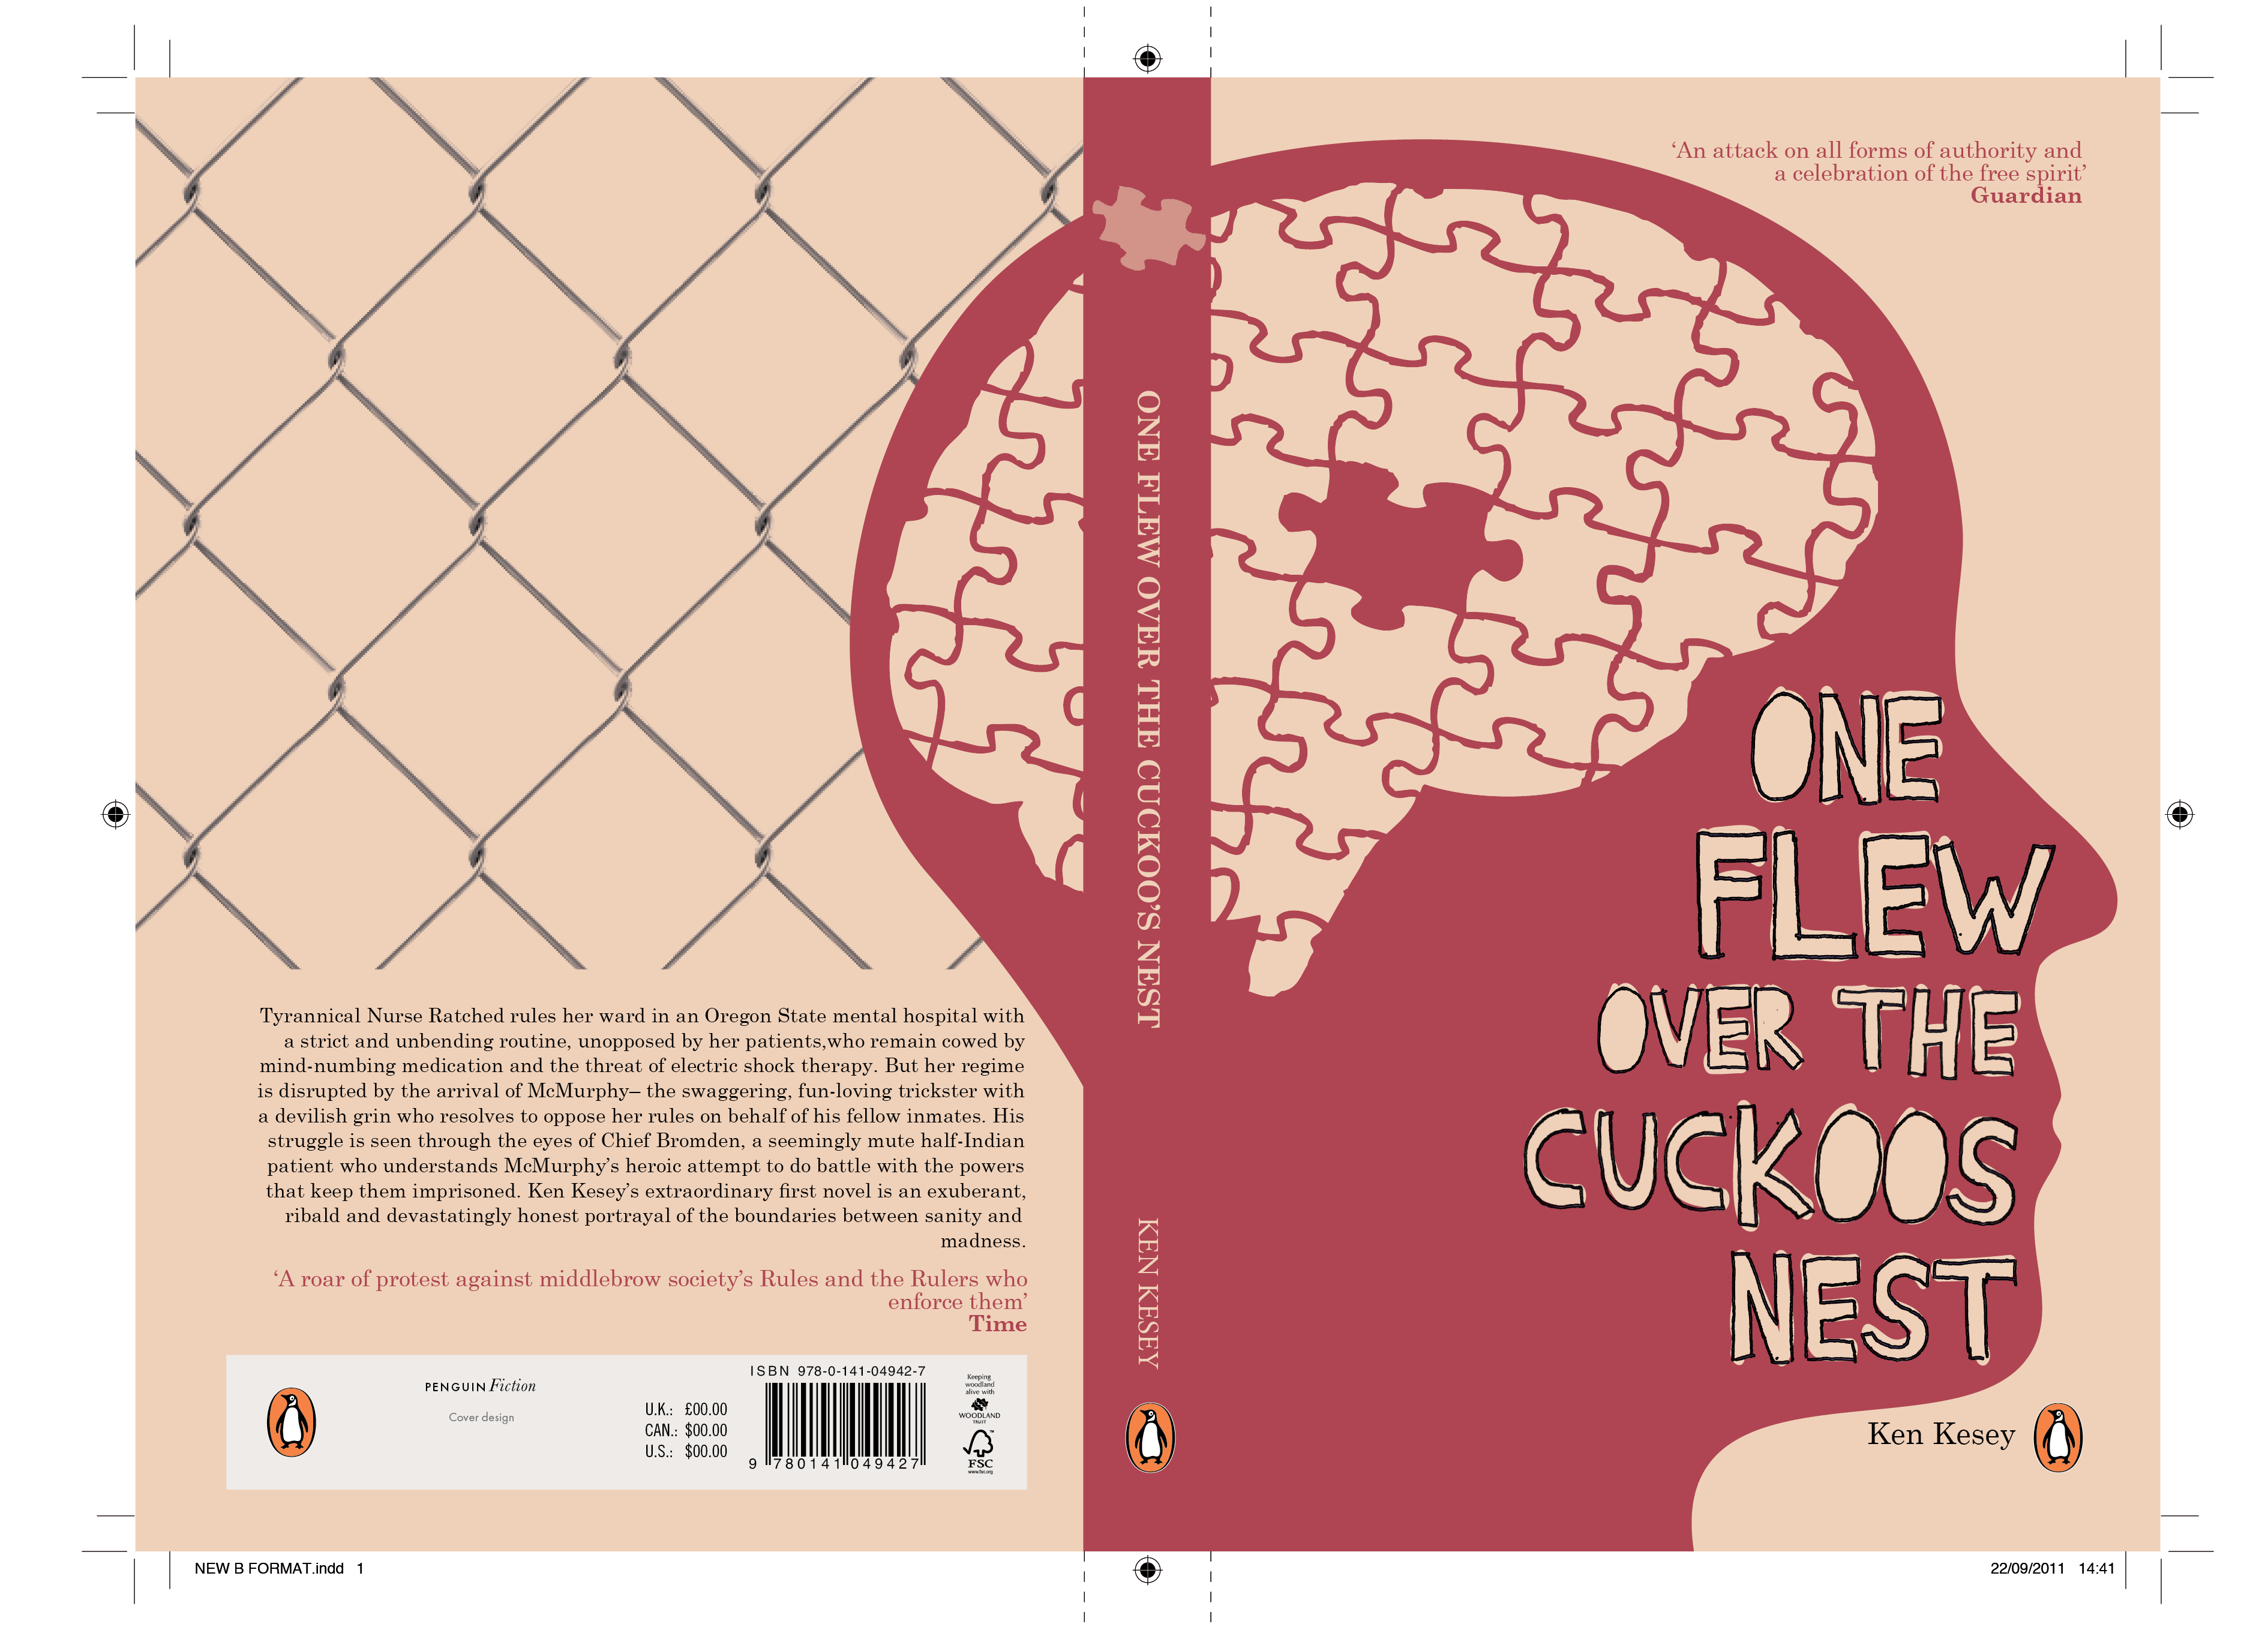 one flew over the cuckoos nest (individual vs society) essay One flew over the cuckoo's nest essay back next  writer's block can be painful, but we'll help get you over the hump and build a great outline for your paper.